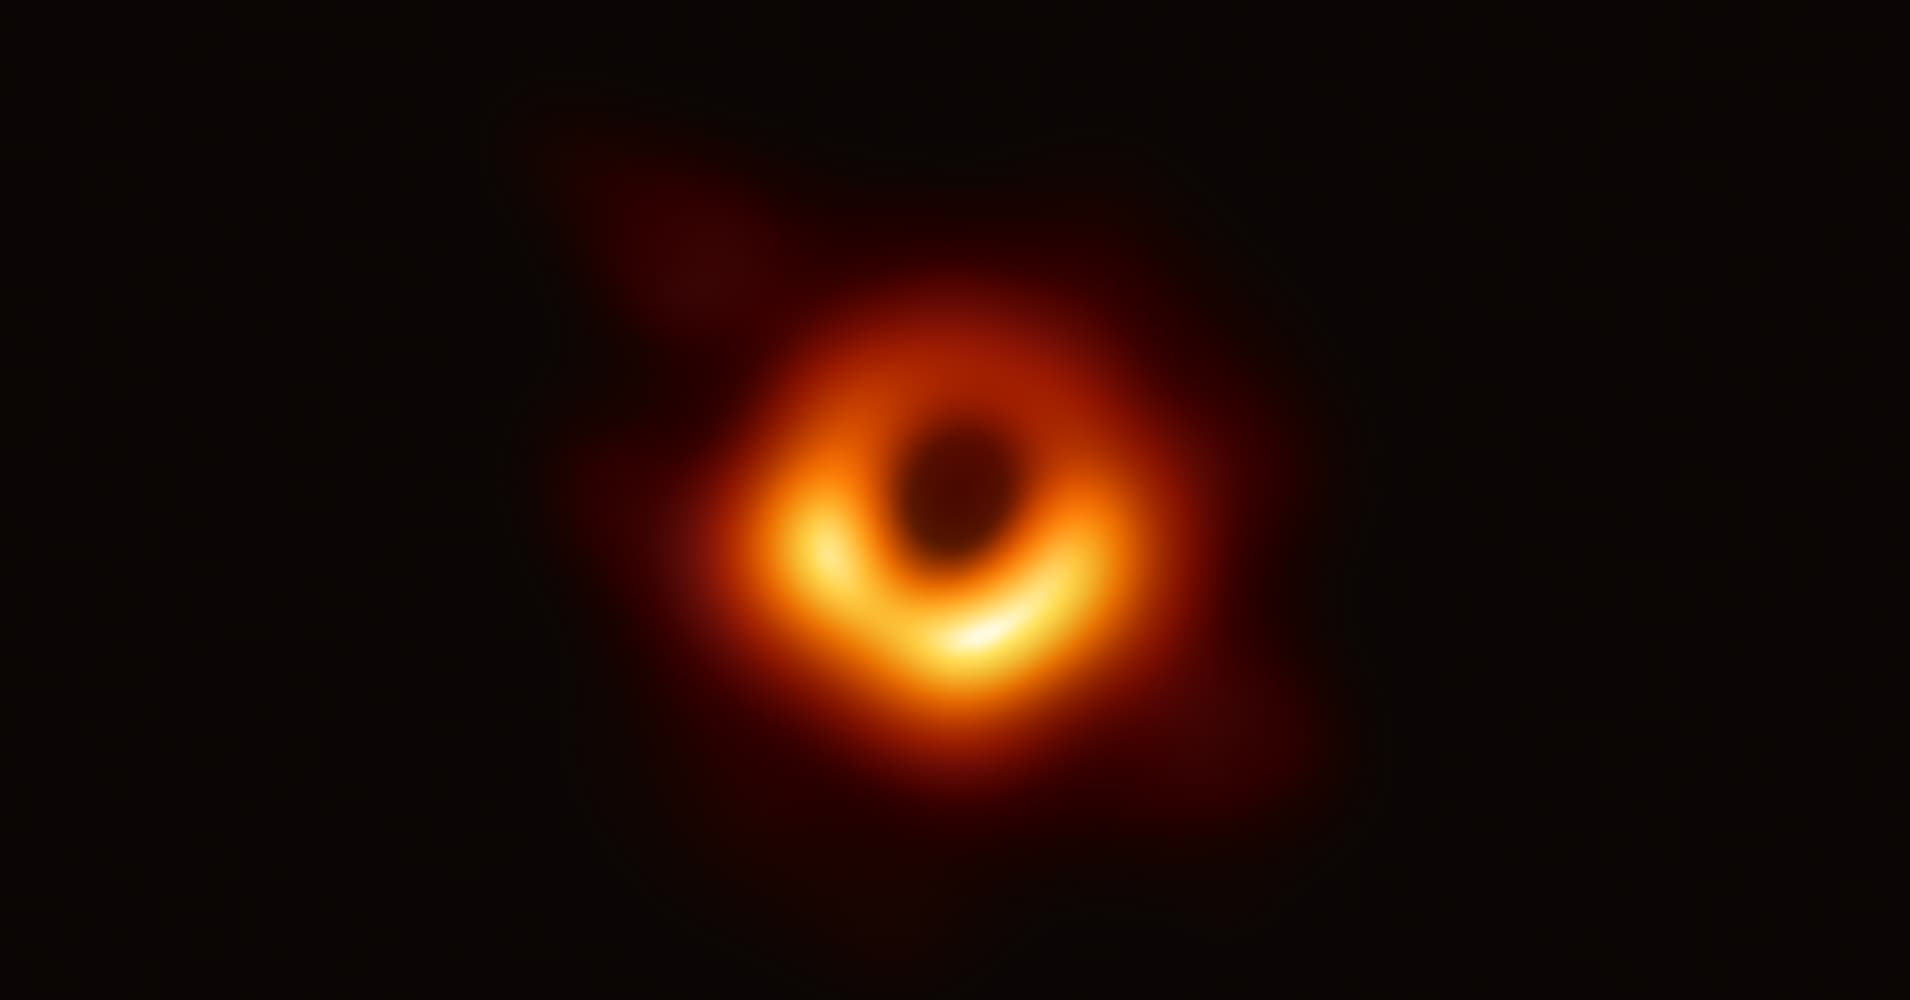 Meet the 29-year-old woman behind the first-ever black hole image